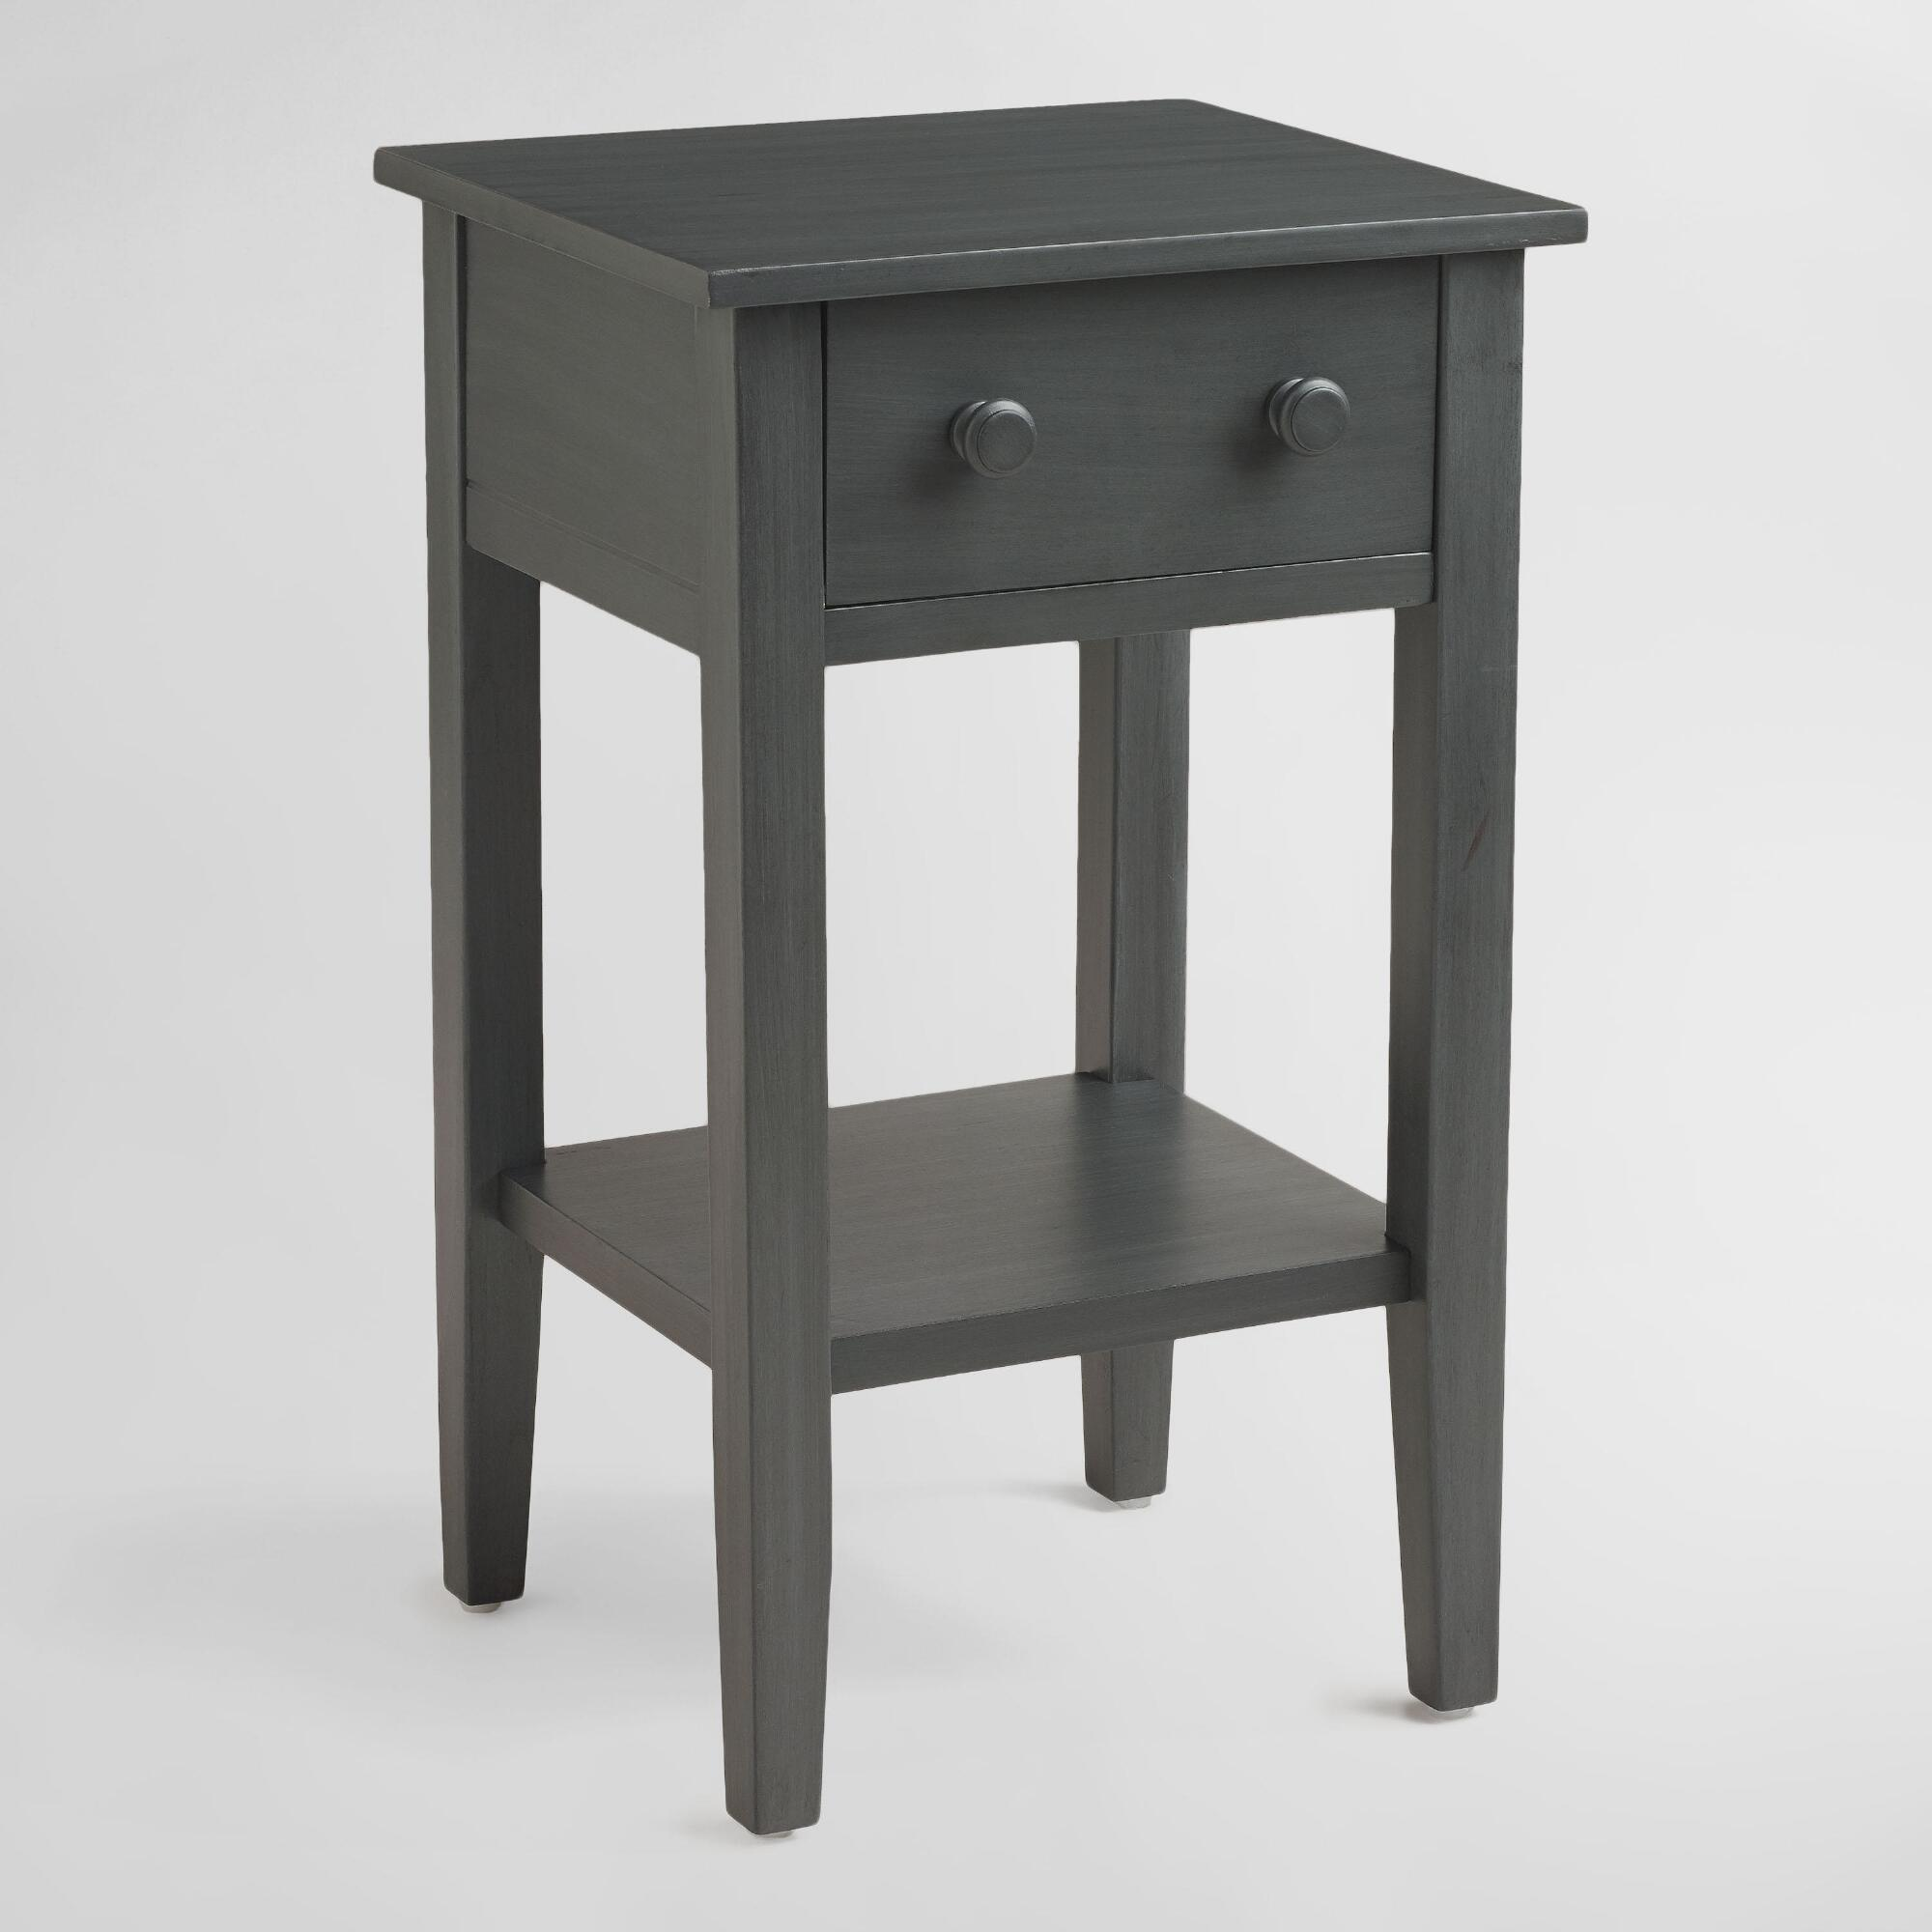 nightstands bedside tables vanity sets world market iipsrv fcgi and end tobacco blue sara nightstand depot home furniture small gray table royal design unfinished wood corner desk